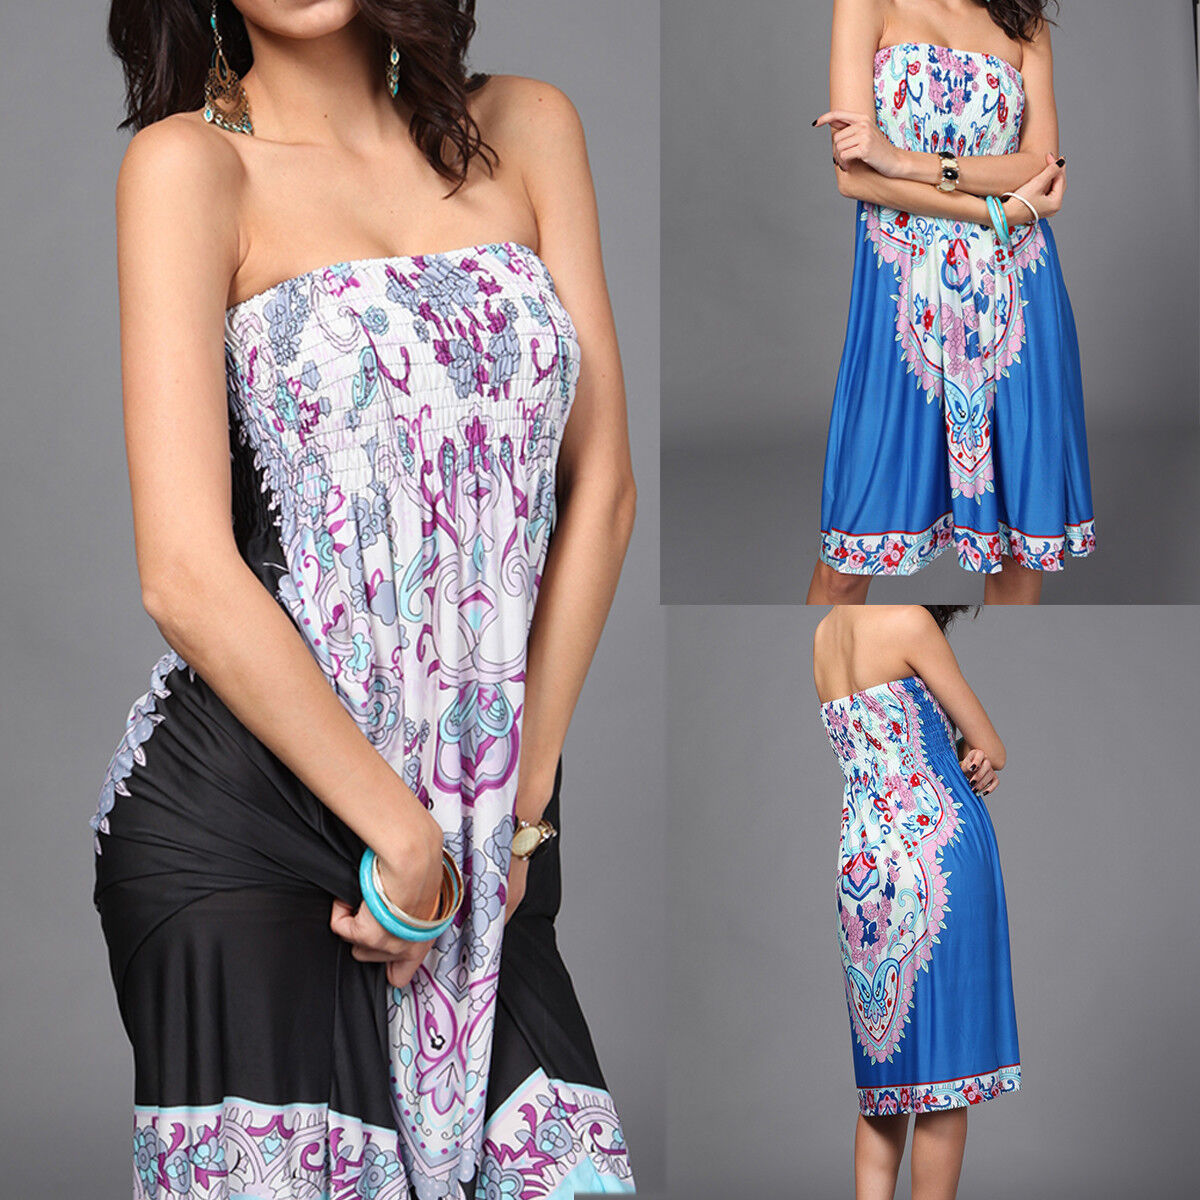 New Women's Strapless Tube Top Dress Summer Beach Boho Short Mini Sundress US Clothing, Shoes & Accessories